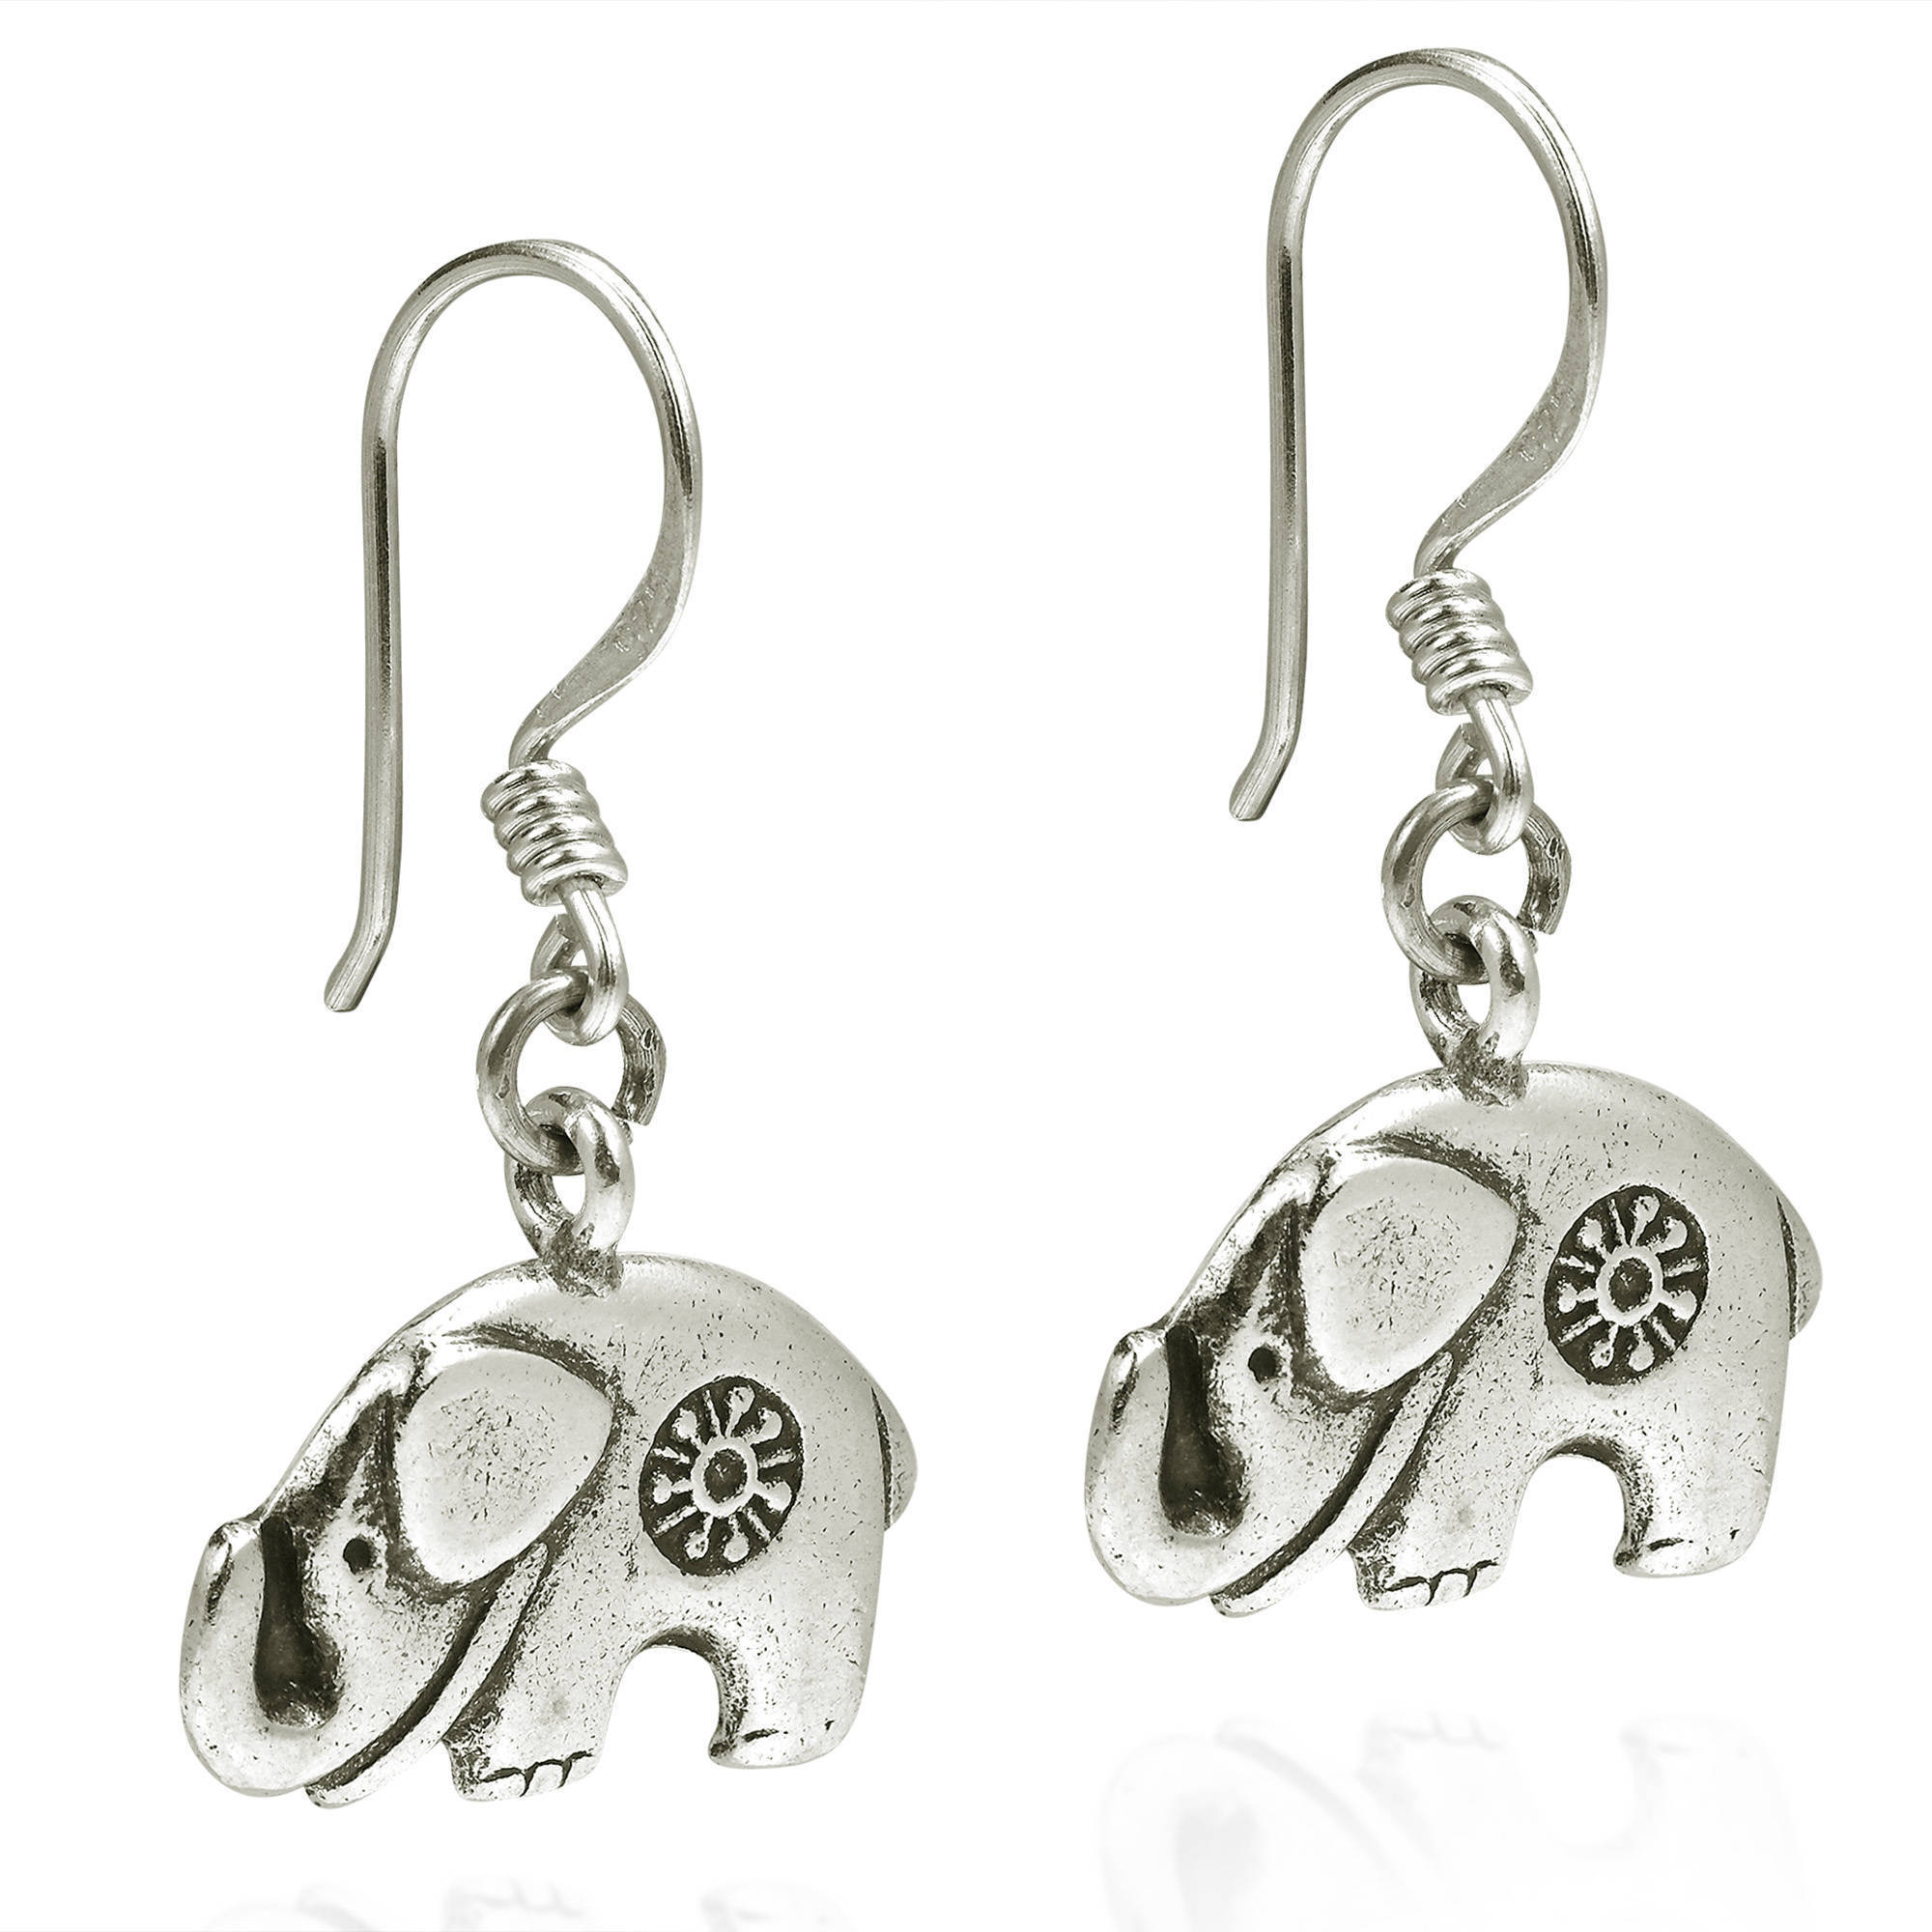 3a0b46d64 Shop Handmade Karen Hill Tribe Mountain Elephant Silver Dangle Earrings ( Thailand) - Free Shipping On Orders Over $45 - Overstock - 12775852